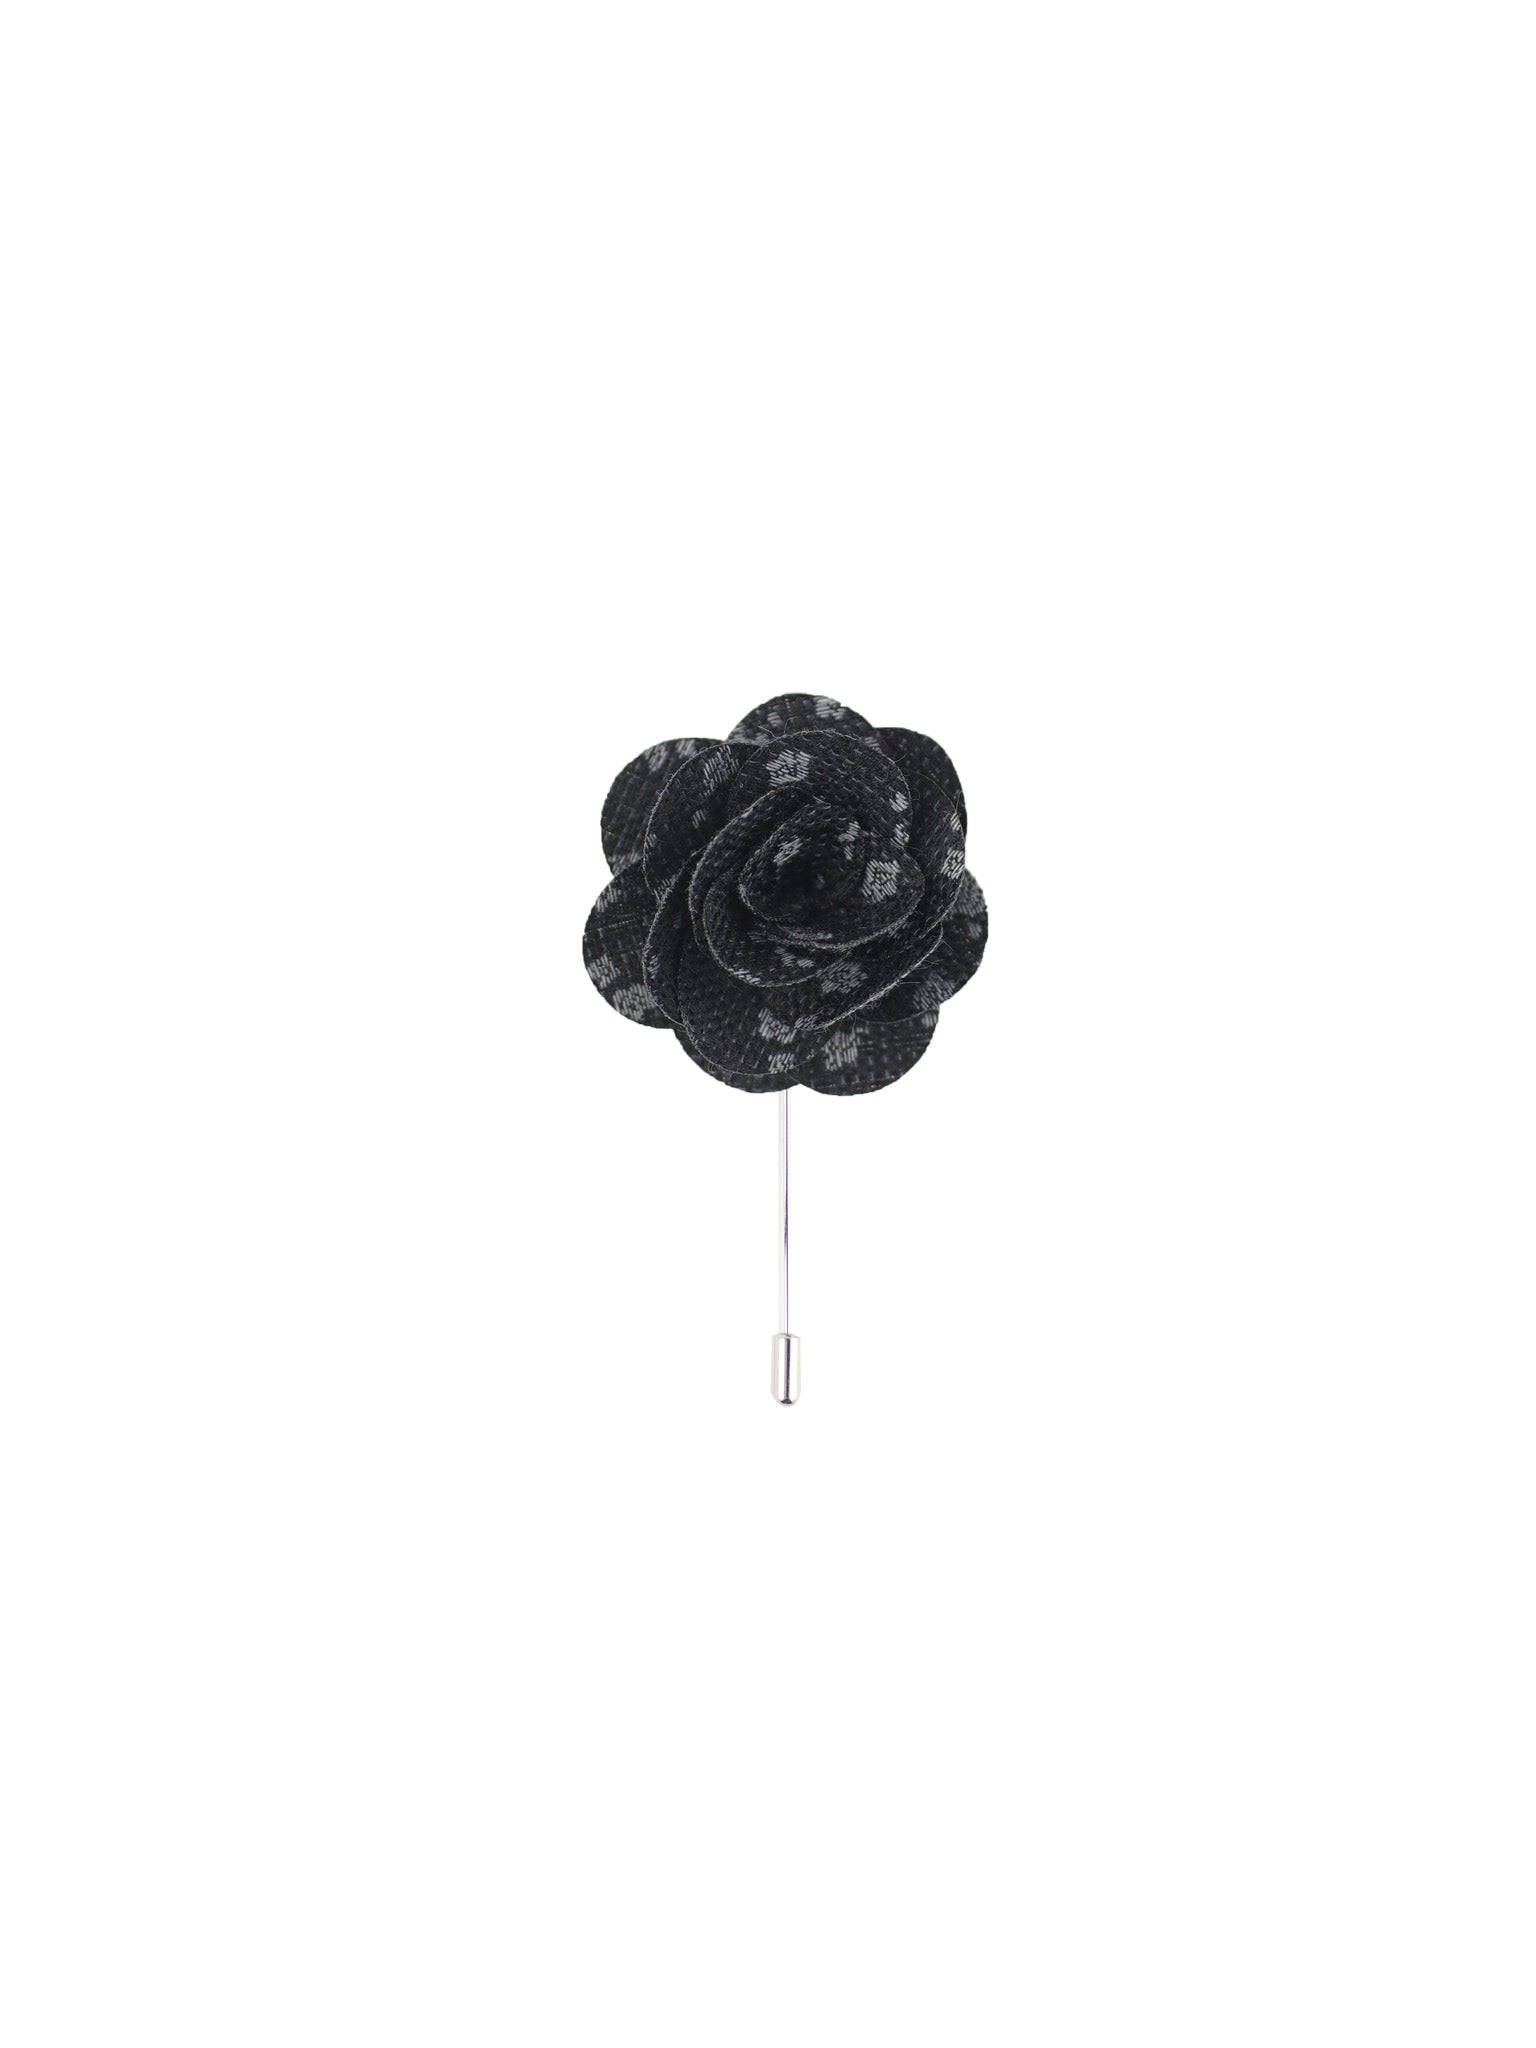 Black & Silver Floral Lapel Pin from DIBI